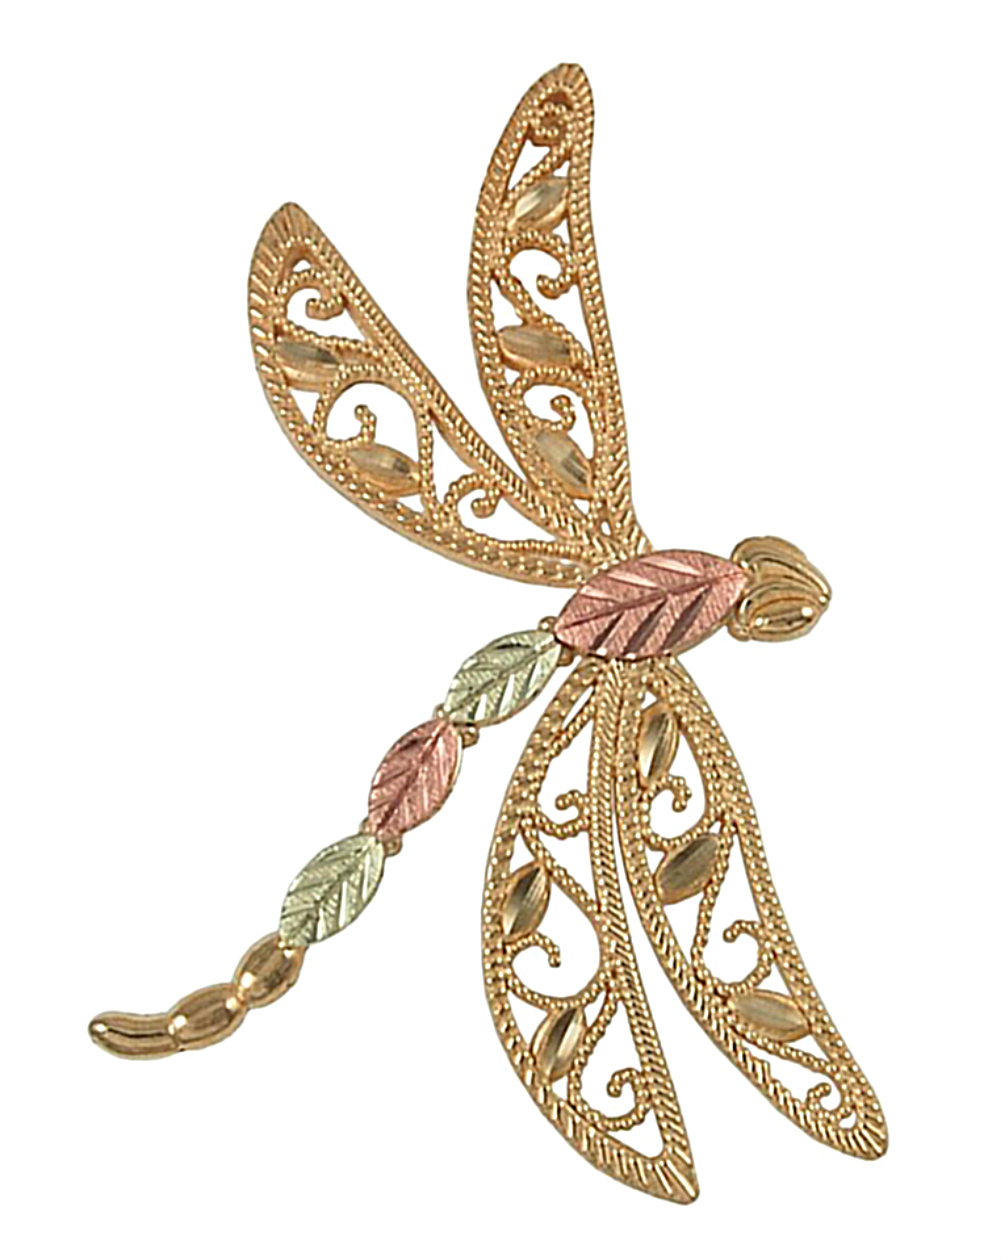 Dragonfly Jewelry with Black Hills Gold Motif - Boomer Style ...